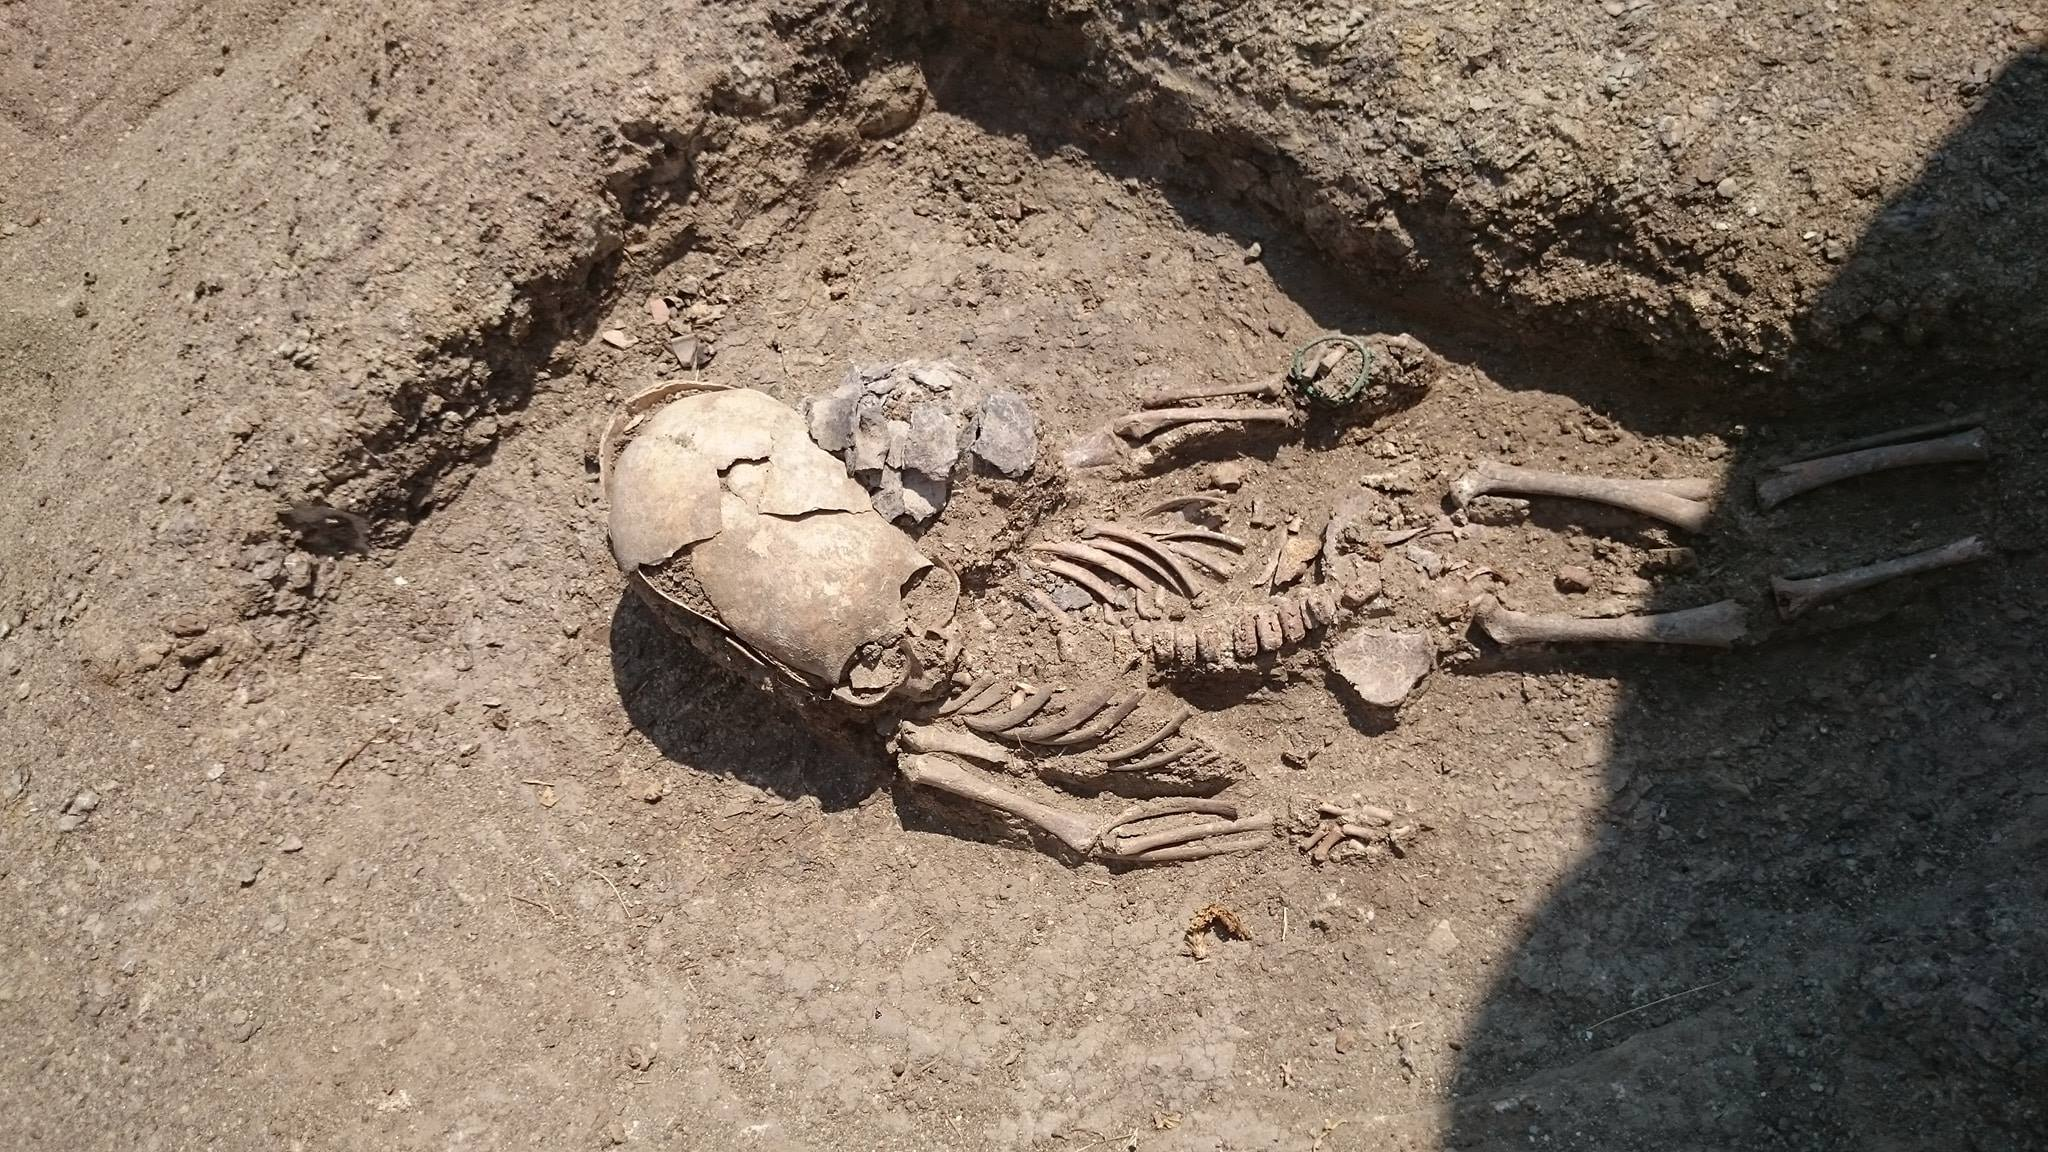 Baby with alien skull discovered in Crimea, alien skull baby crimea, Baby with alien skull discovered in Crimea picture, Baby with alien skull discovered in Crimea video